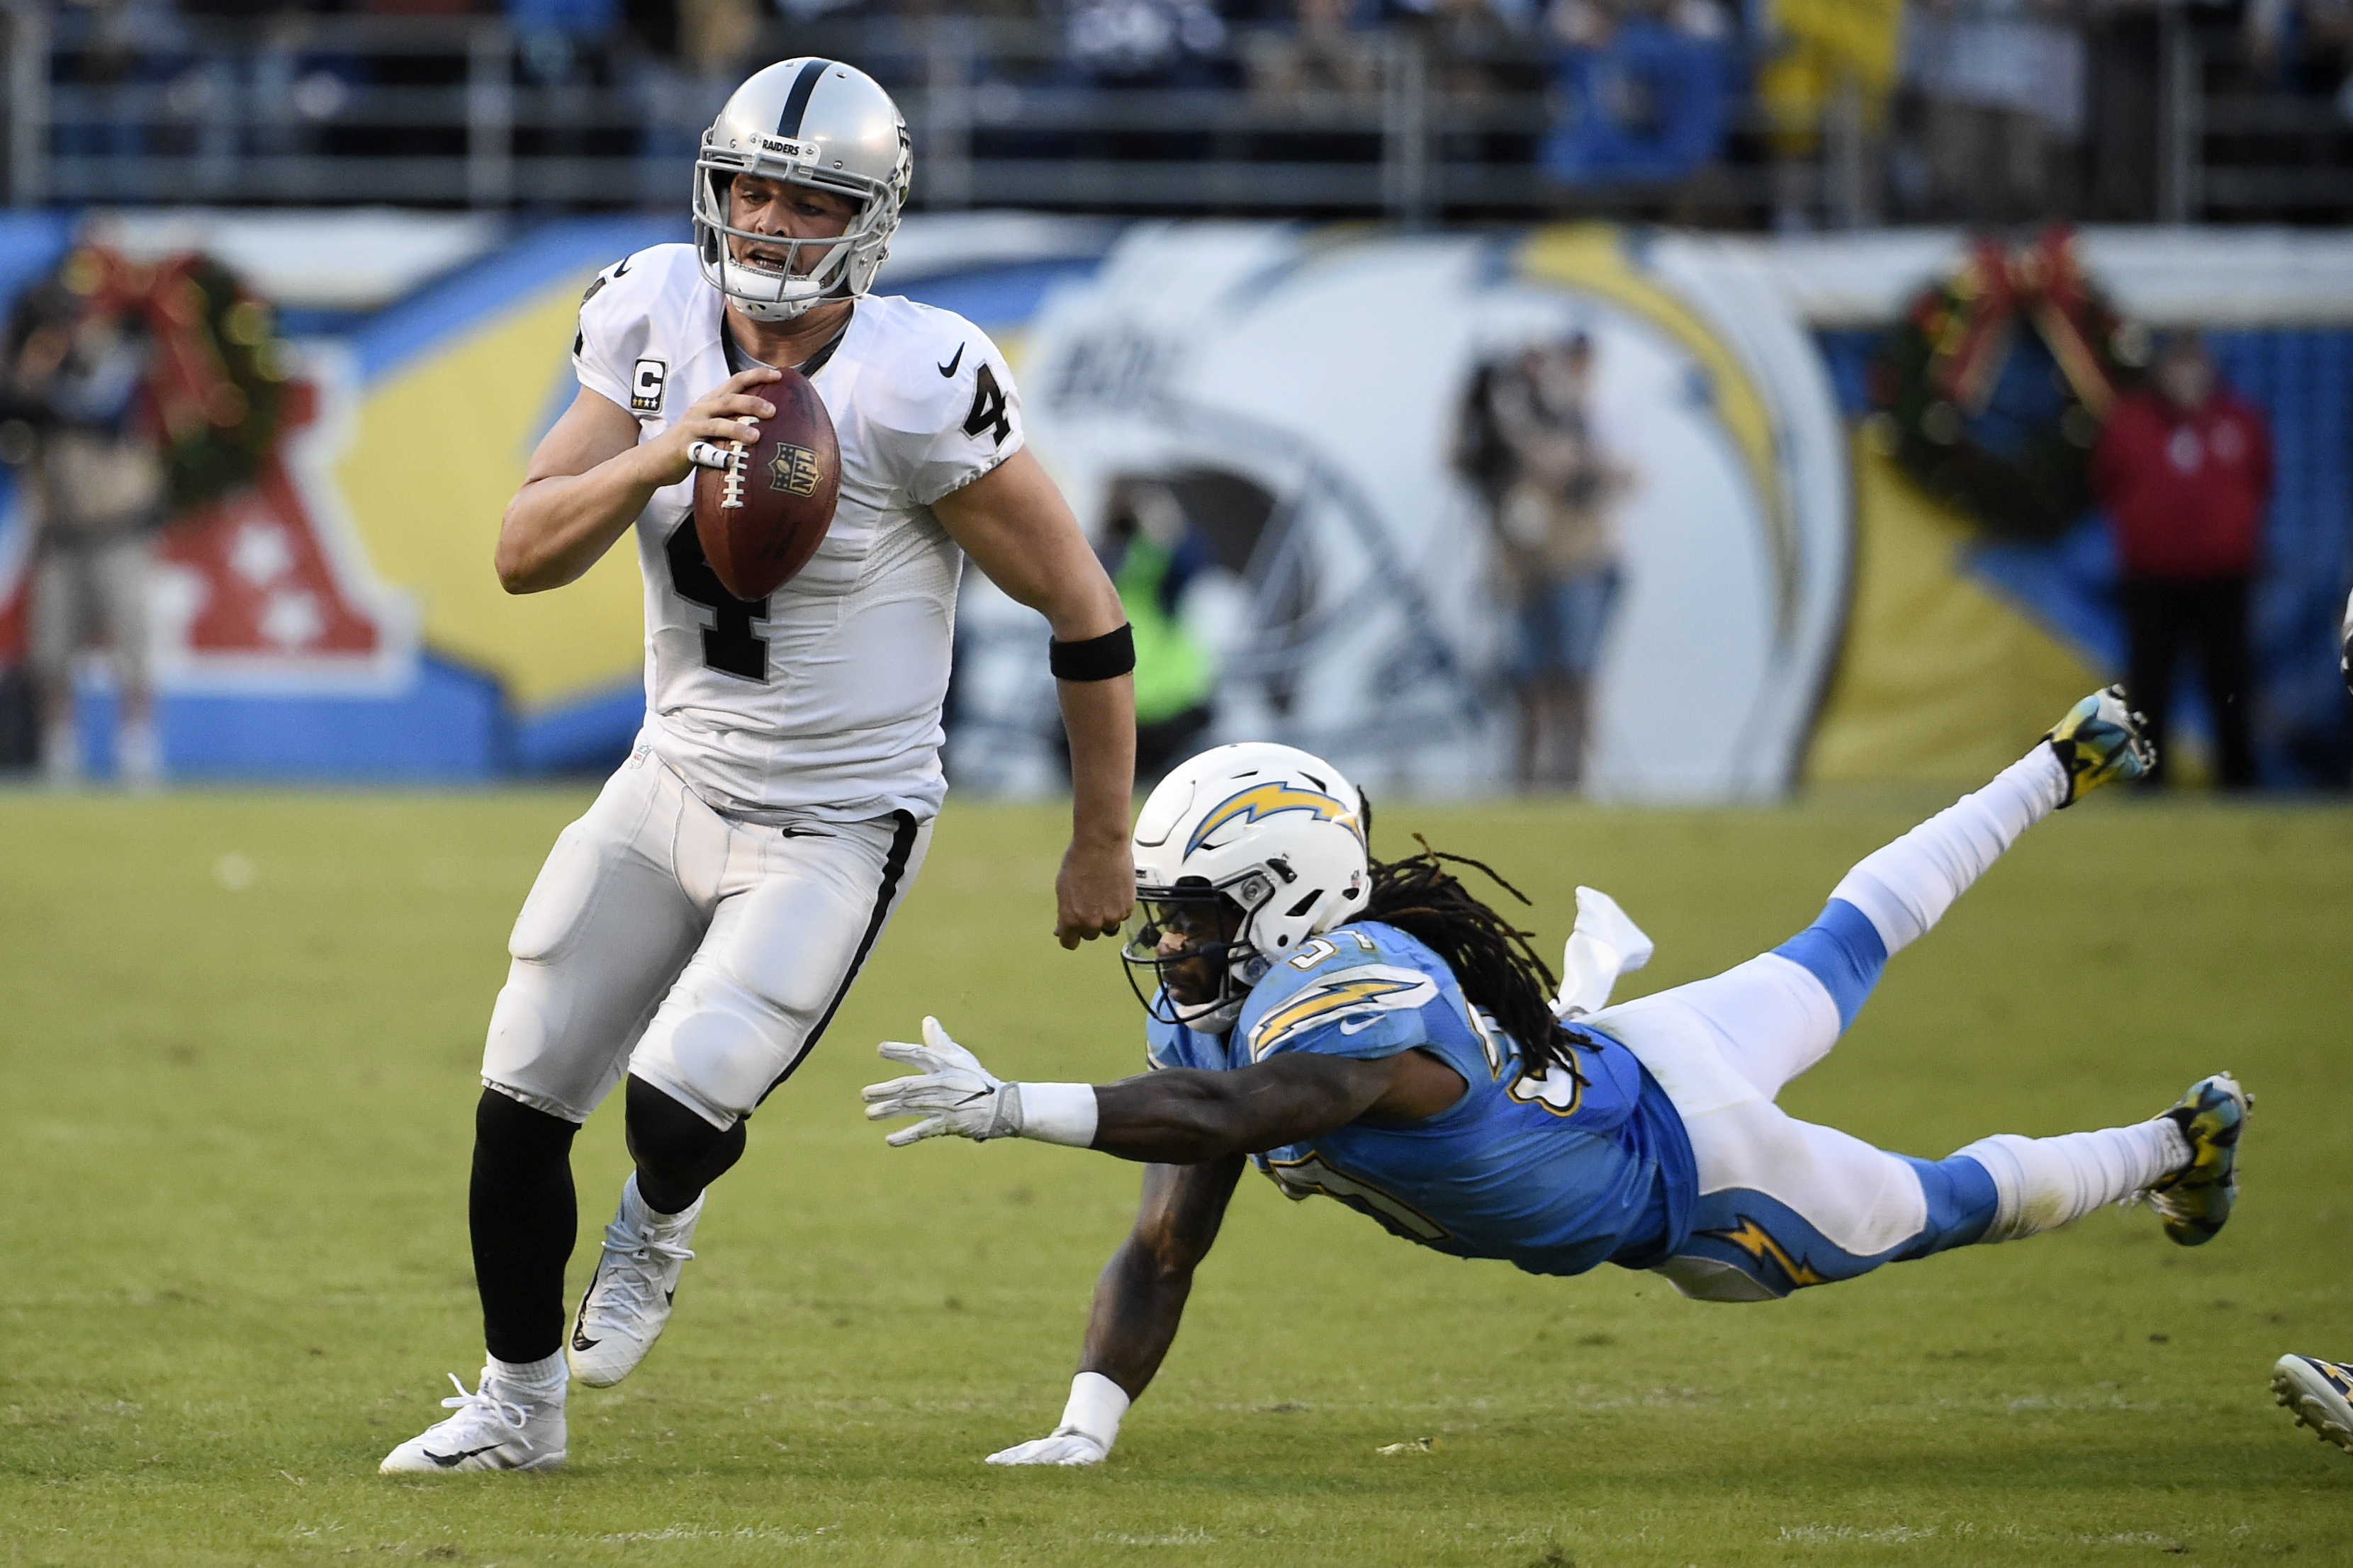 Oakland Raiders quarterback Derek Carr gets away from San Diego Chargers strong safety Jahleel Addae during the second half of an NFL football game Sunday, Dec. 18, 2016, in San Diego. (AP Photo/Denis Poroy)